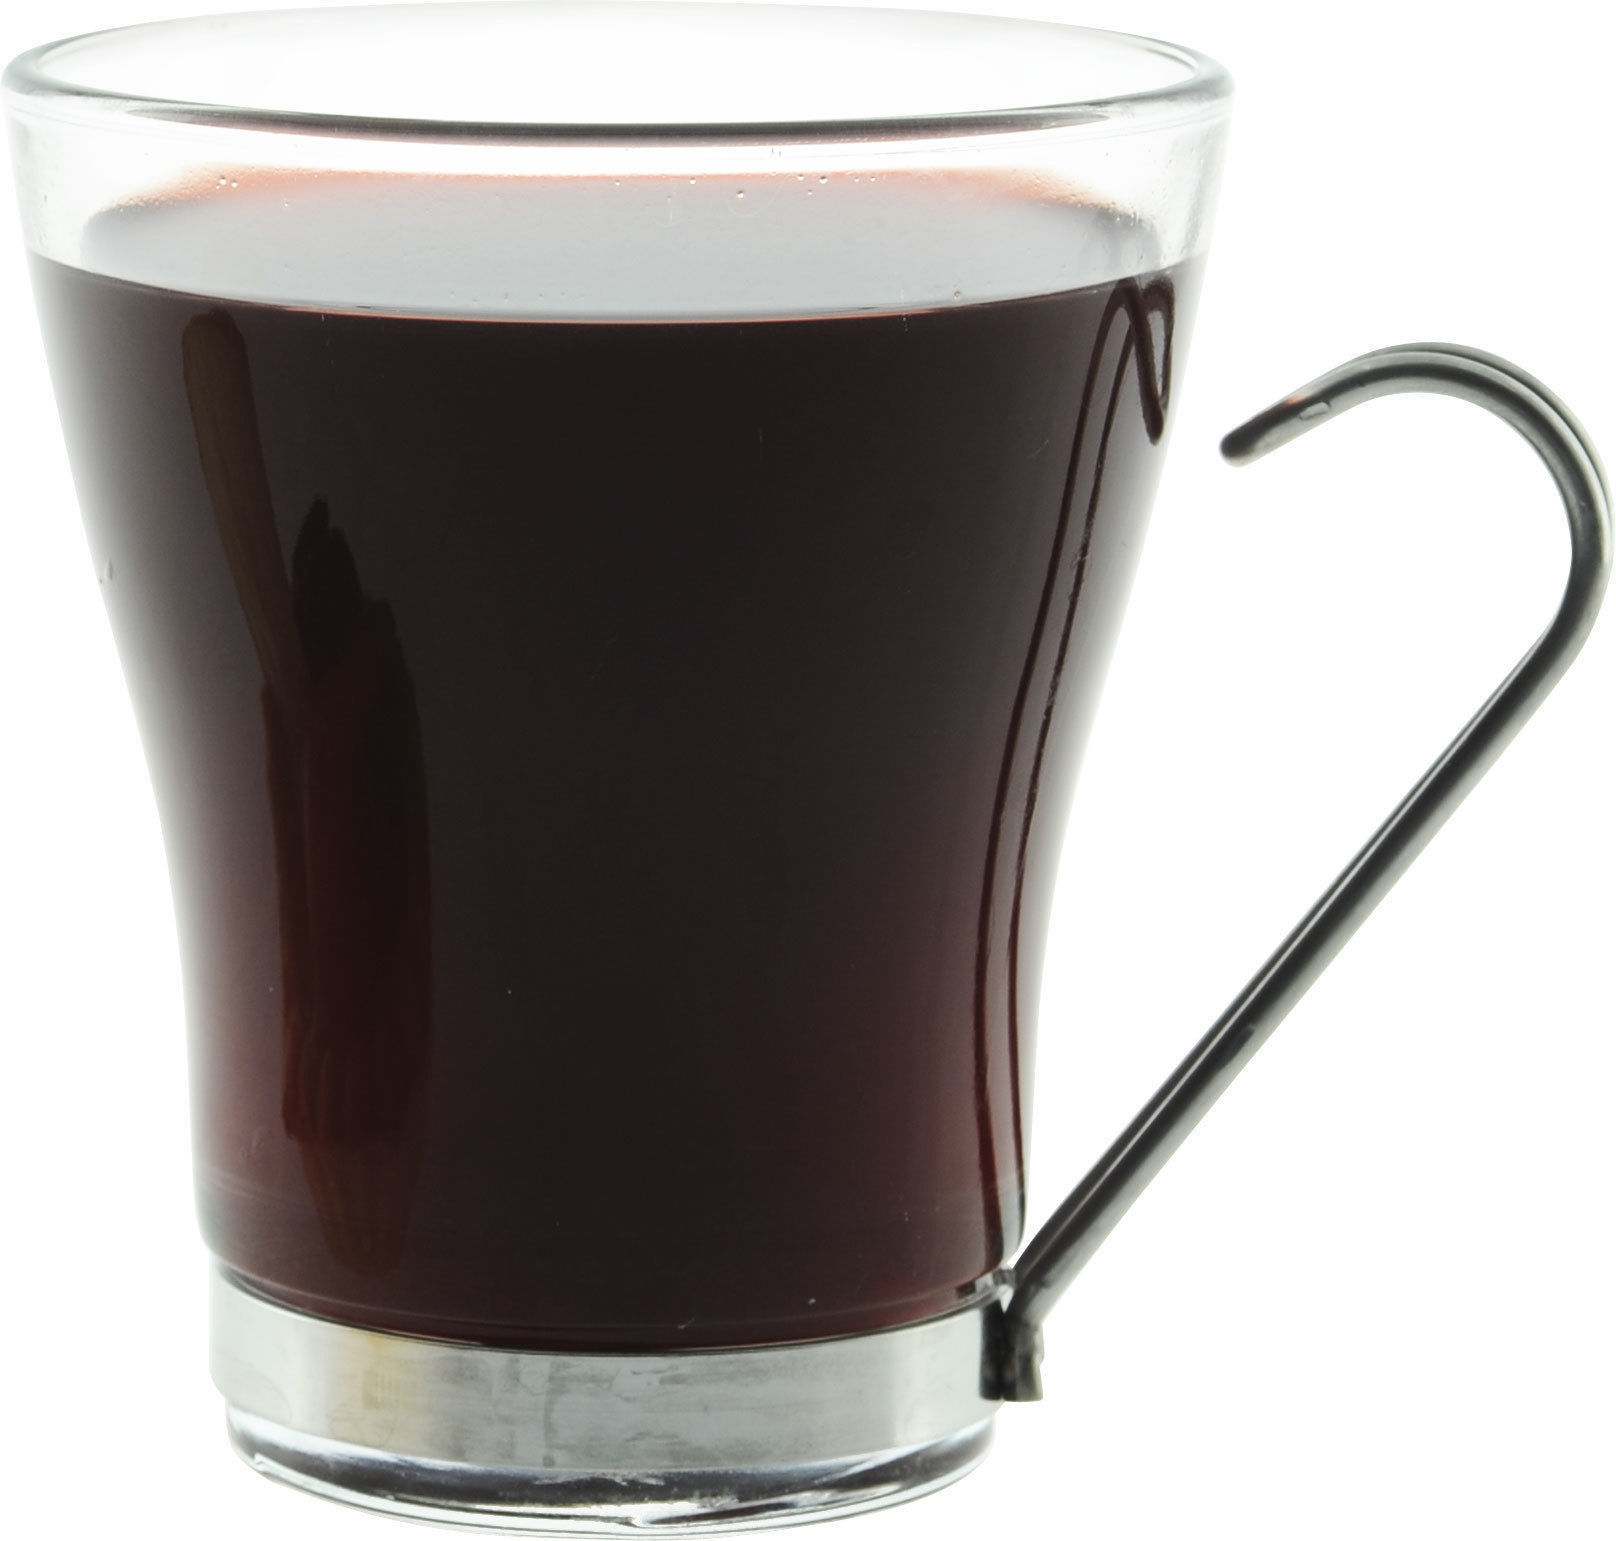 How to Make the Berry Mulled Wine